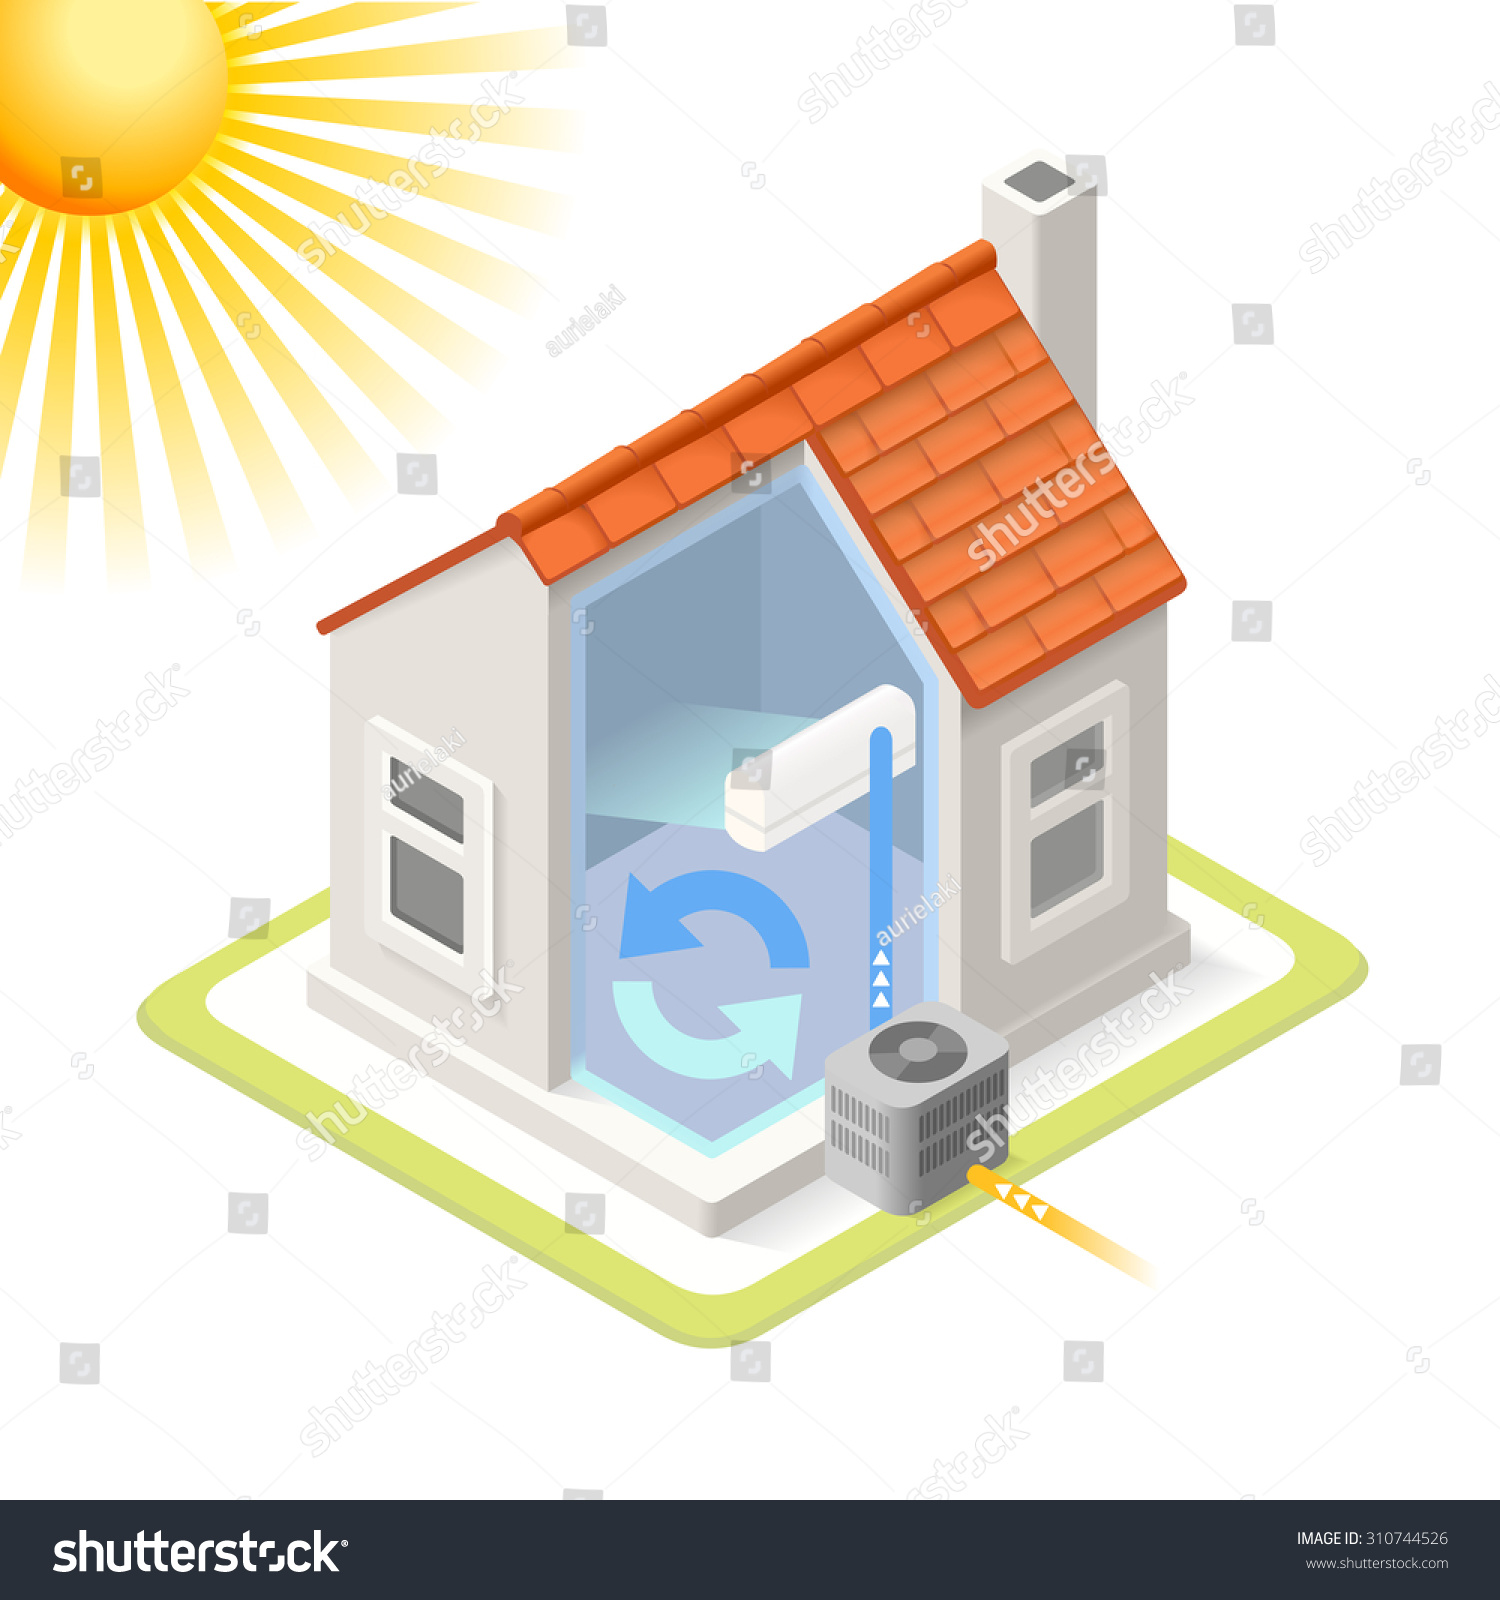 stock vector home cooling system air conditioning unit house heating heat pump infographic isometric building 310744526 home cooling system air conditioning unit stock vector 310744526 home air conditioning diagram at edmiracle.co